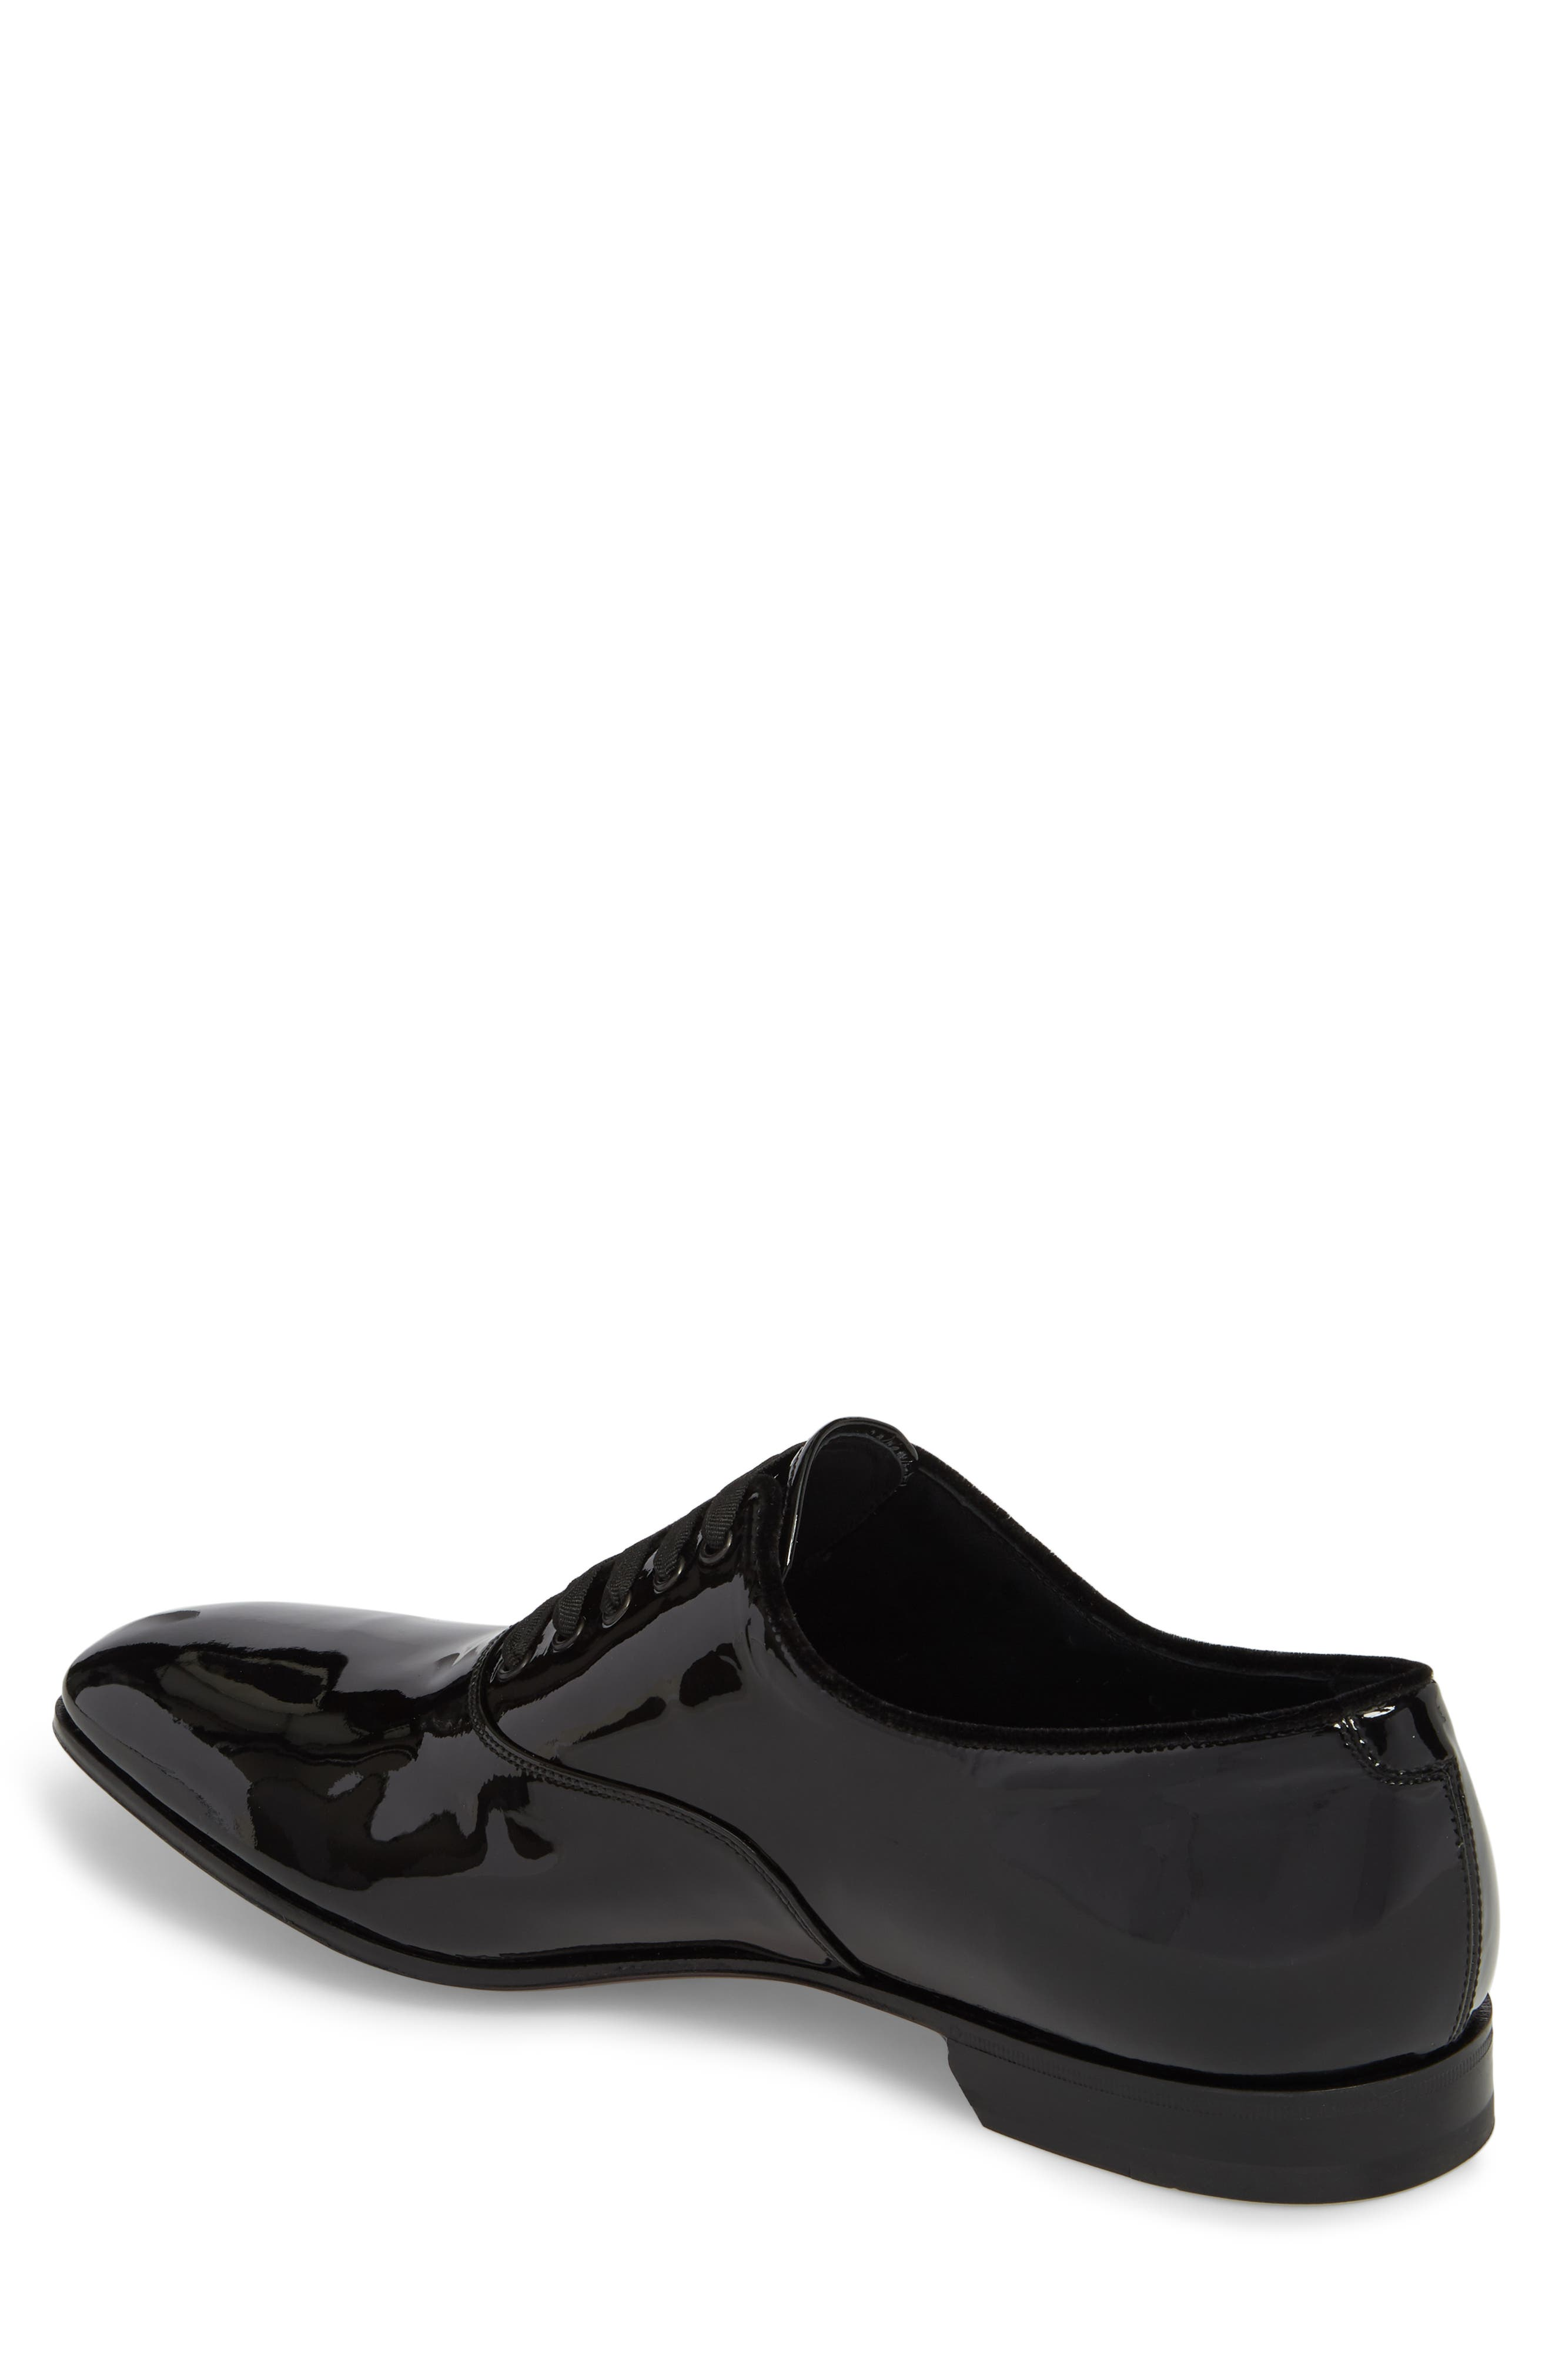 Belshaw Patent Oxford,                             Alternate thumbnail 2, color,                             NERO PATENT LEATHER